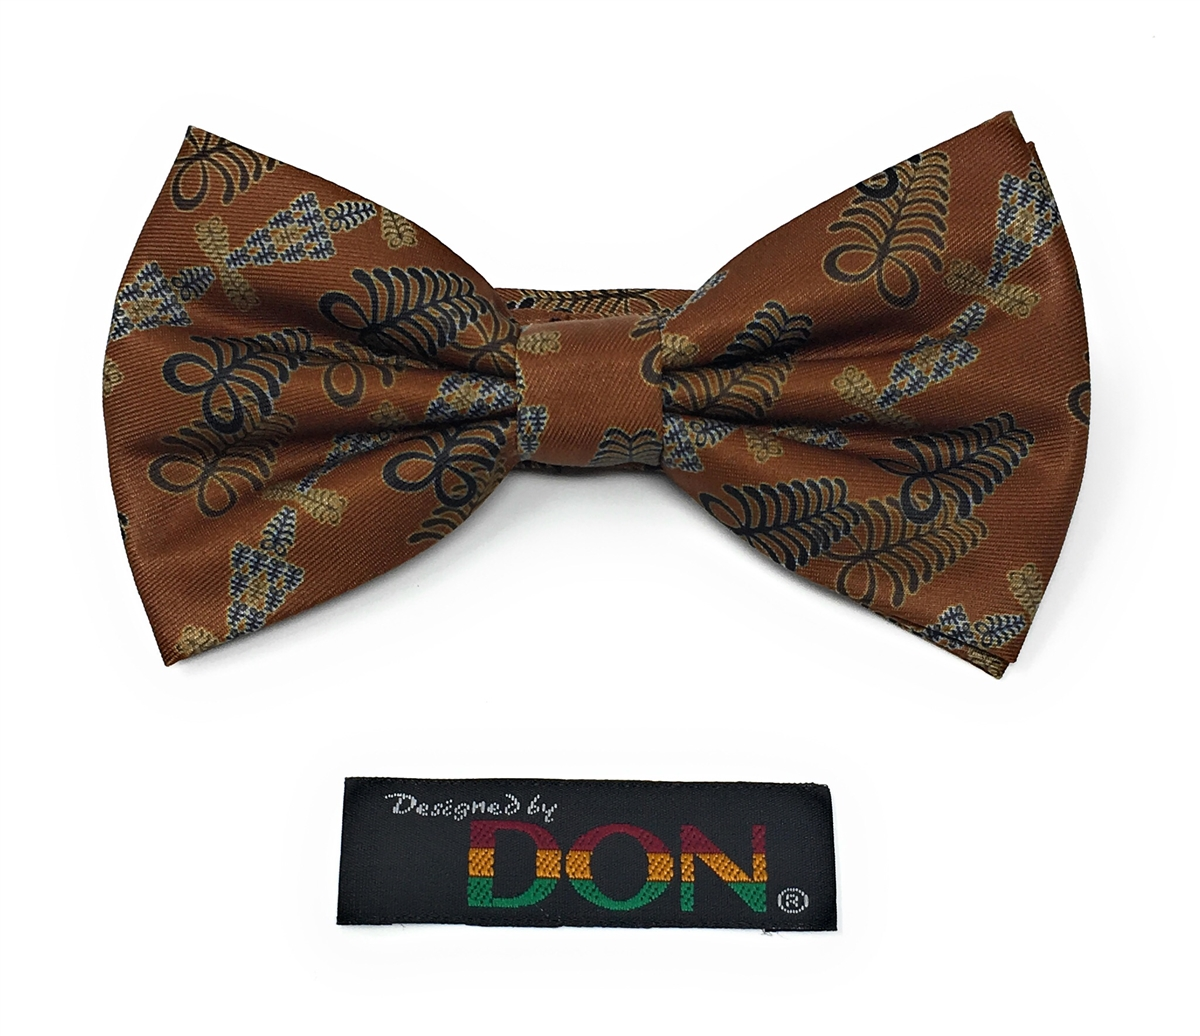 Aya Endurance Tied Bow Tie Set With Hanky